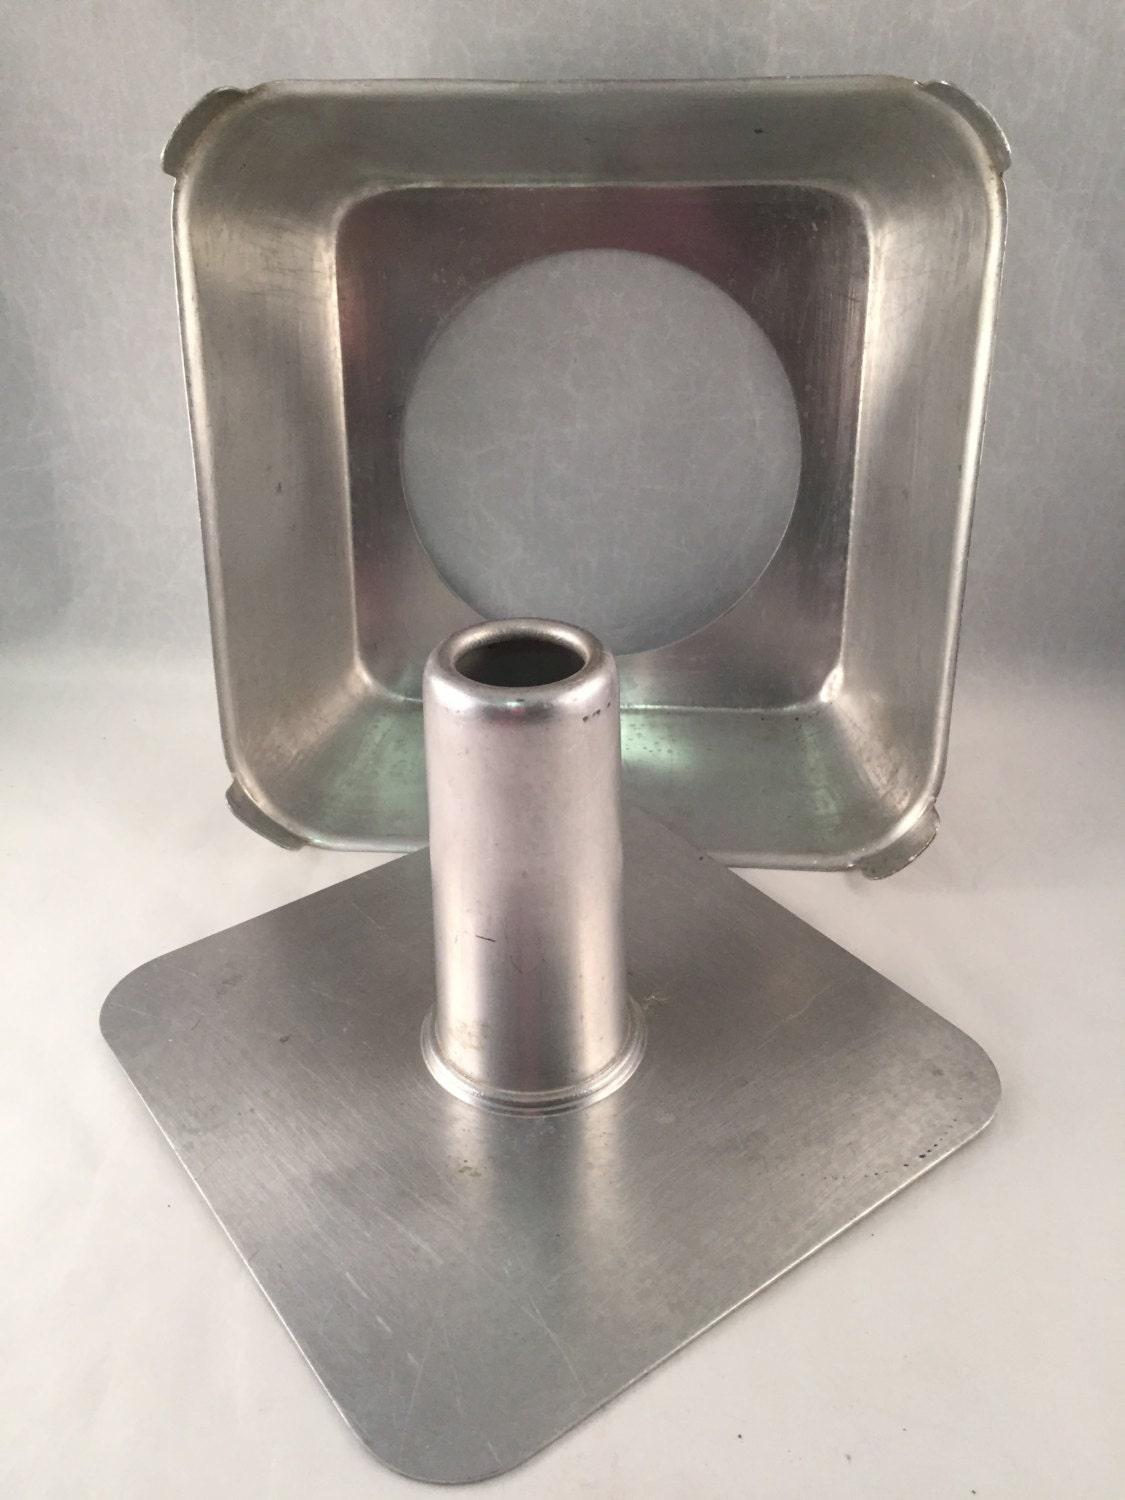 Vintage Wear Ever Square Angel Food Cake Pan 2 Piece With